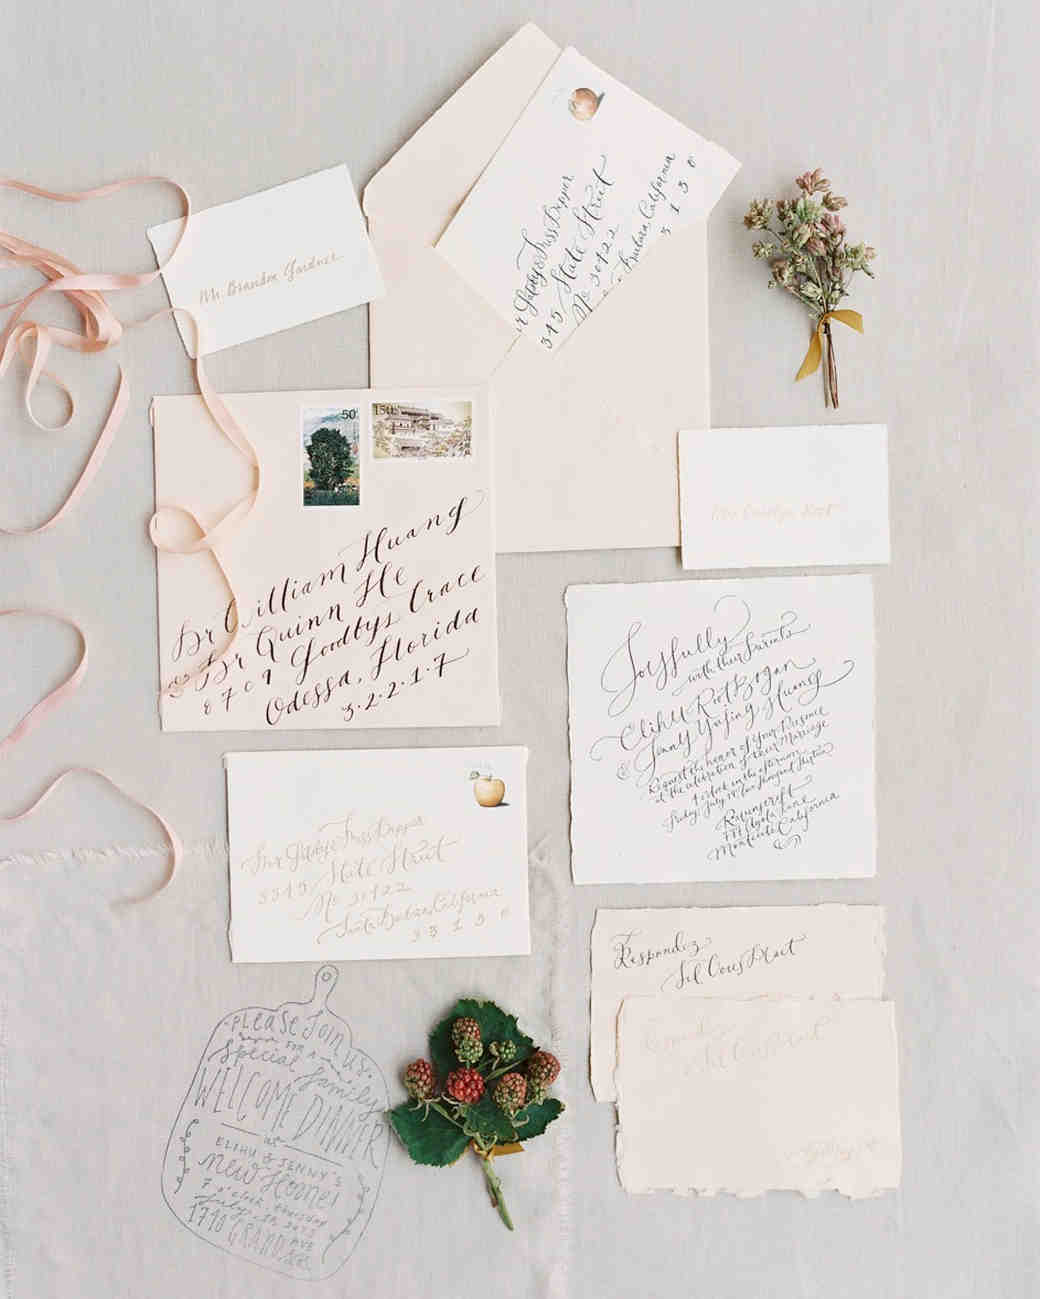 jen-elihu-wedding-stationery-unknown-3-s111865.jpg